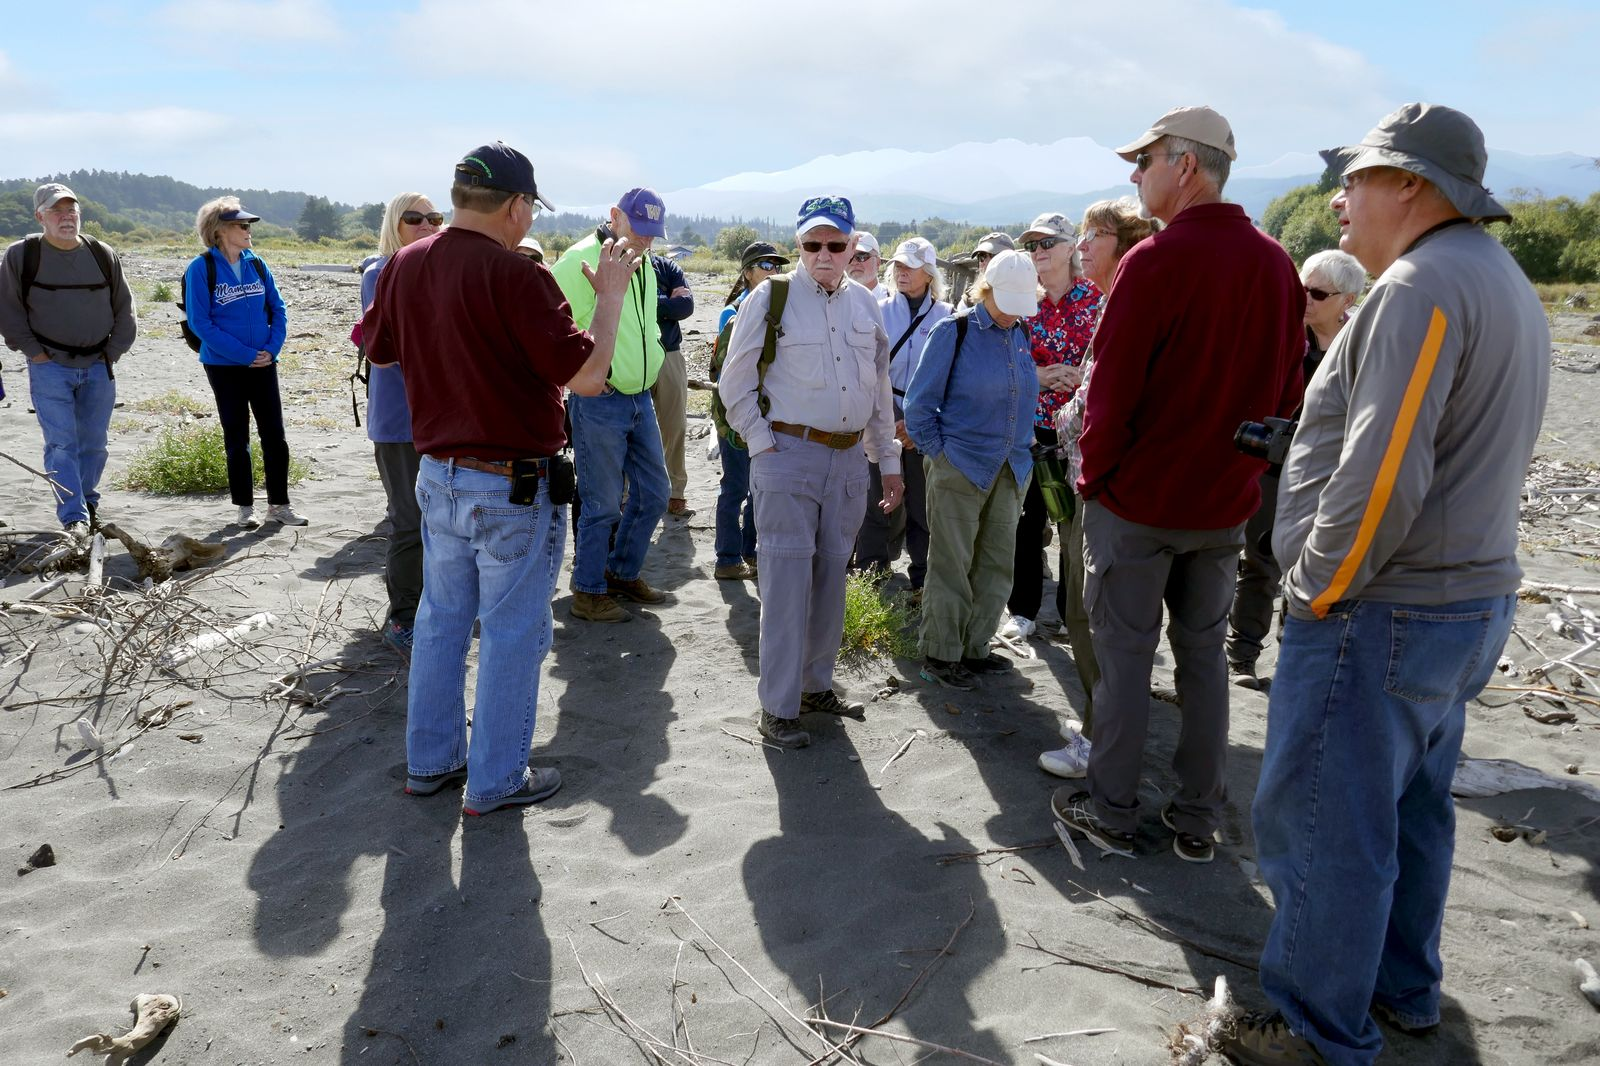 Our guide Robert explains how removing the dams changed the shoreline